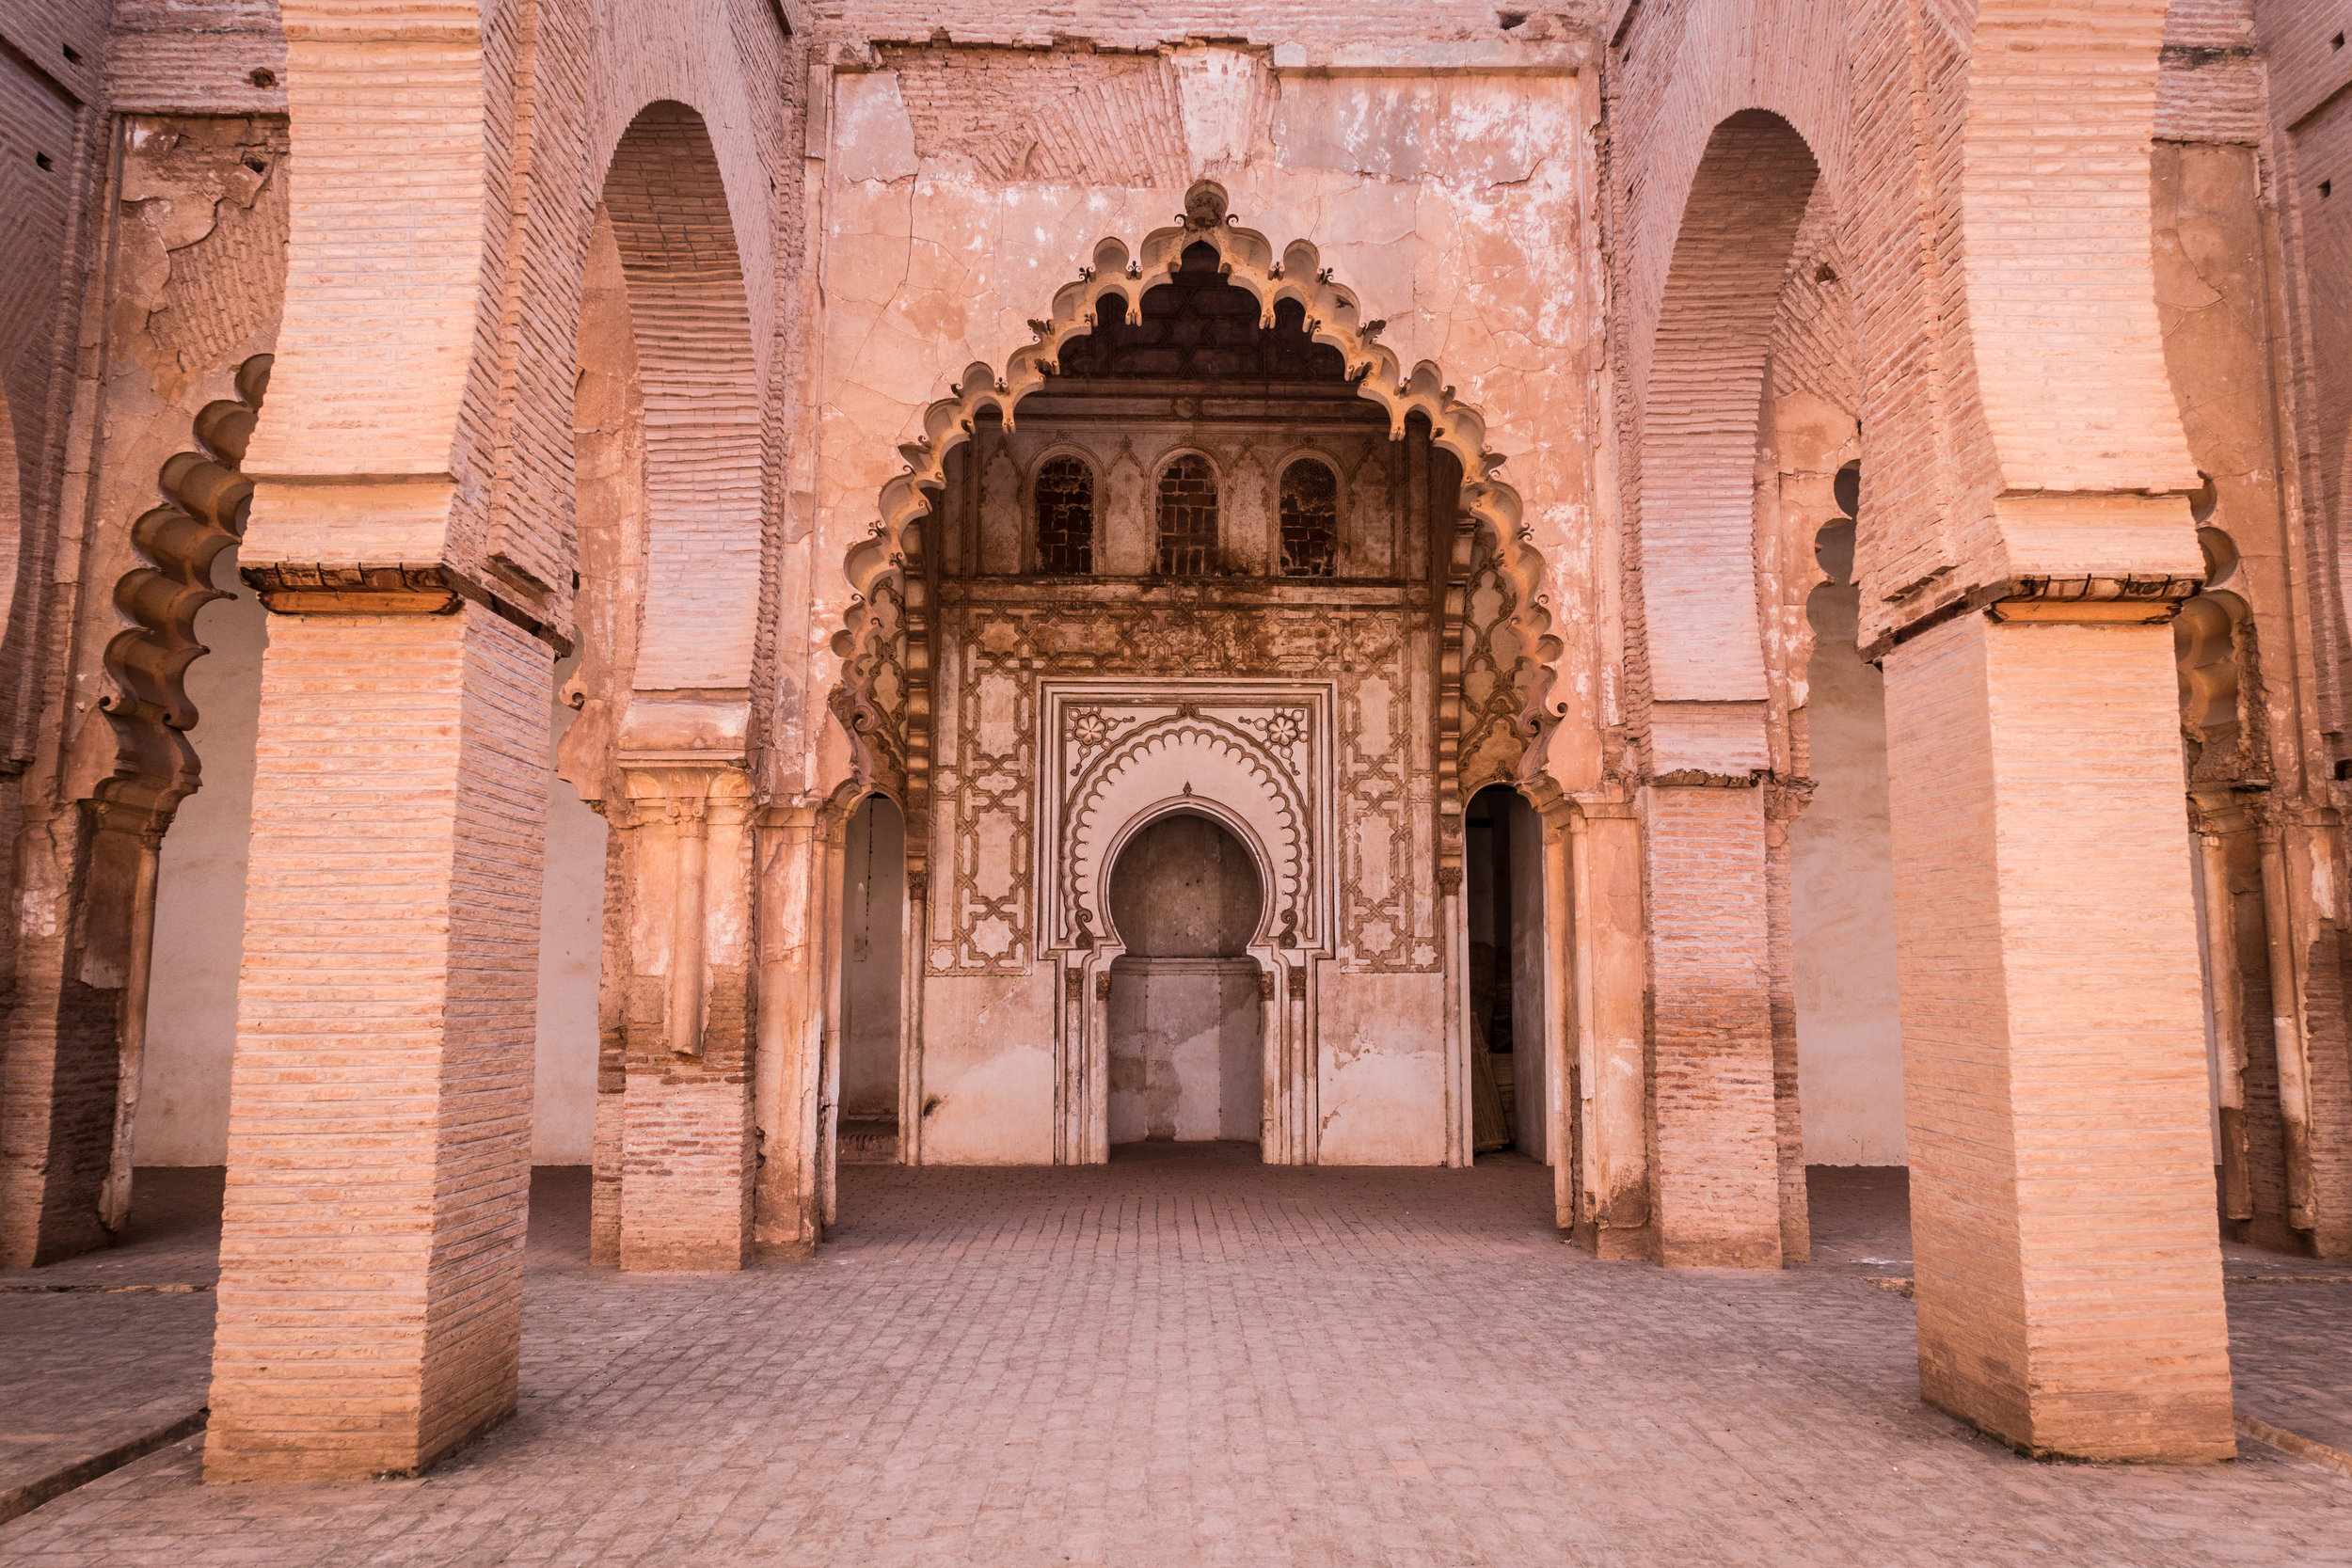 The Tin Mal Mosque, now-defunct, is okay to photograph. Operational mosques are not.